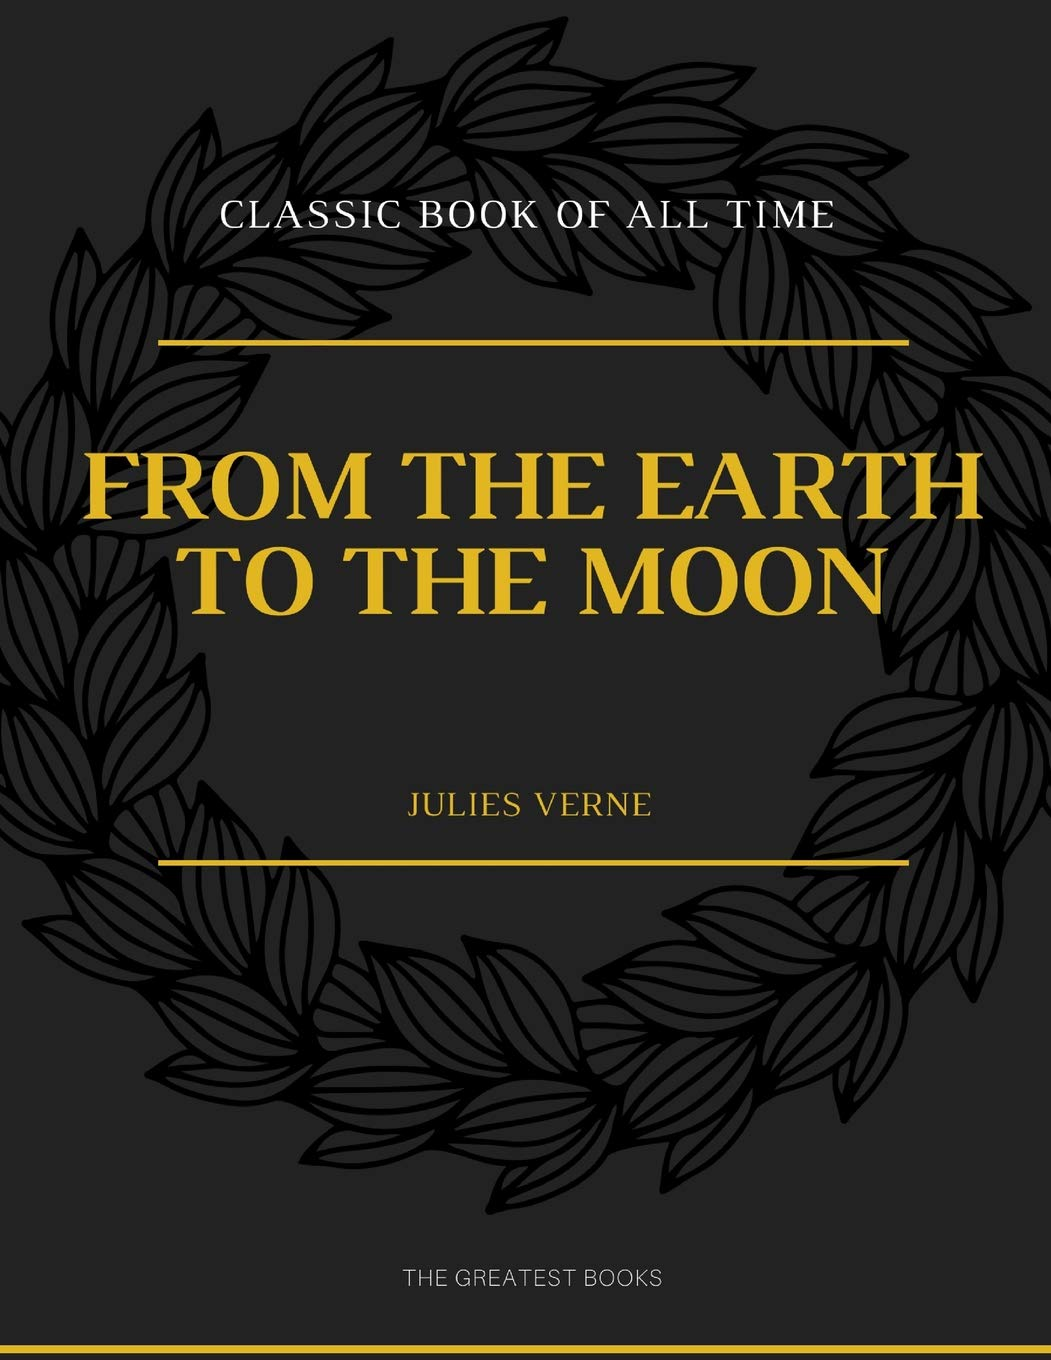 From the Earth to the Moon: Julies Verne: 9781973948674 ...